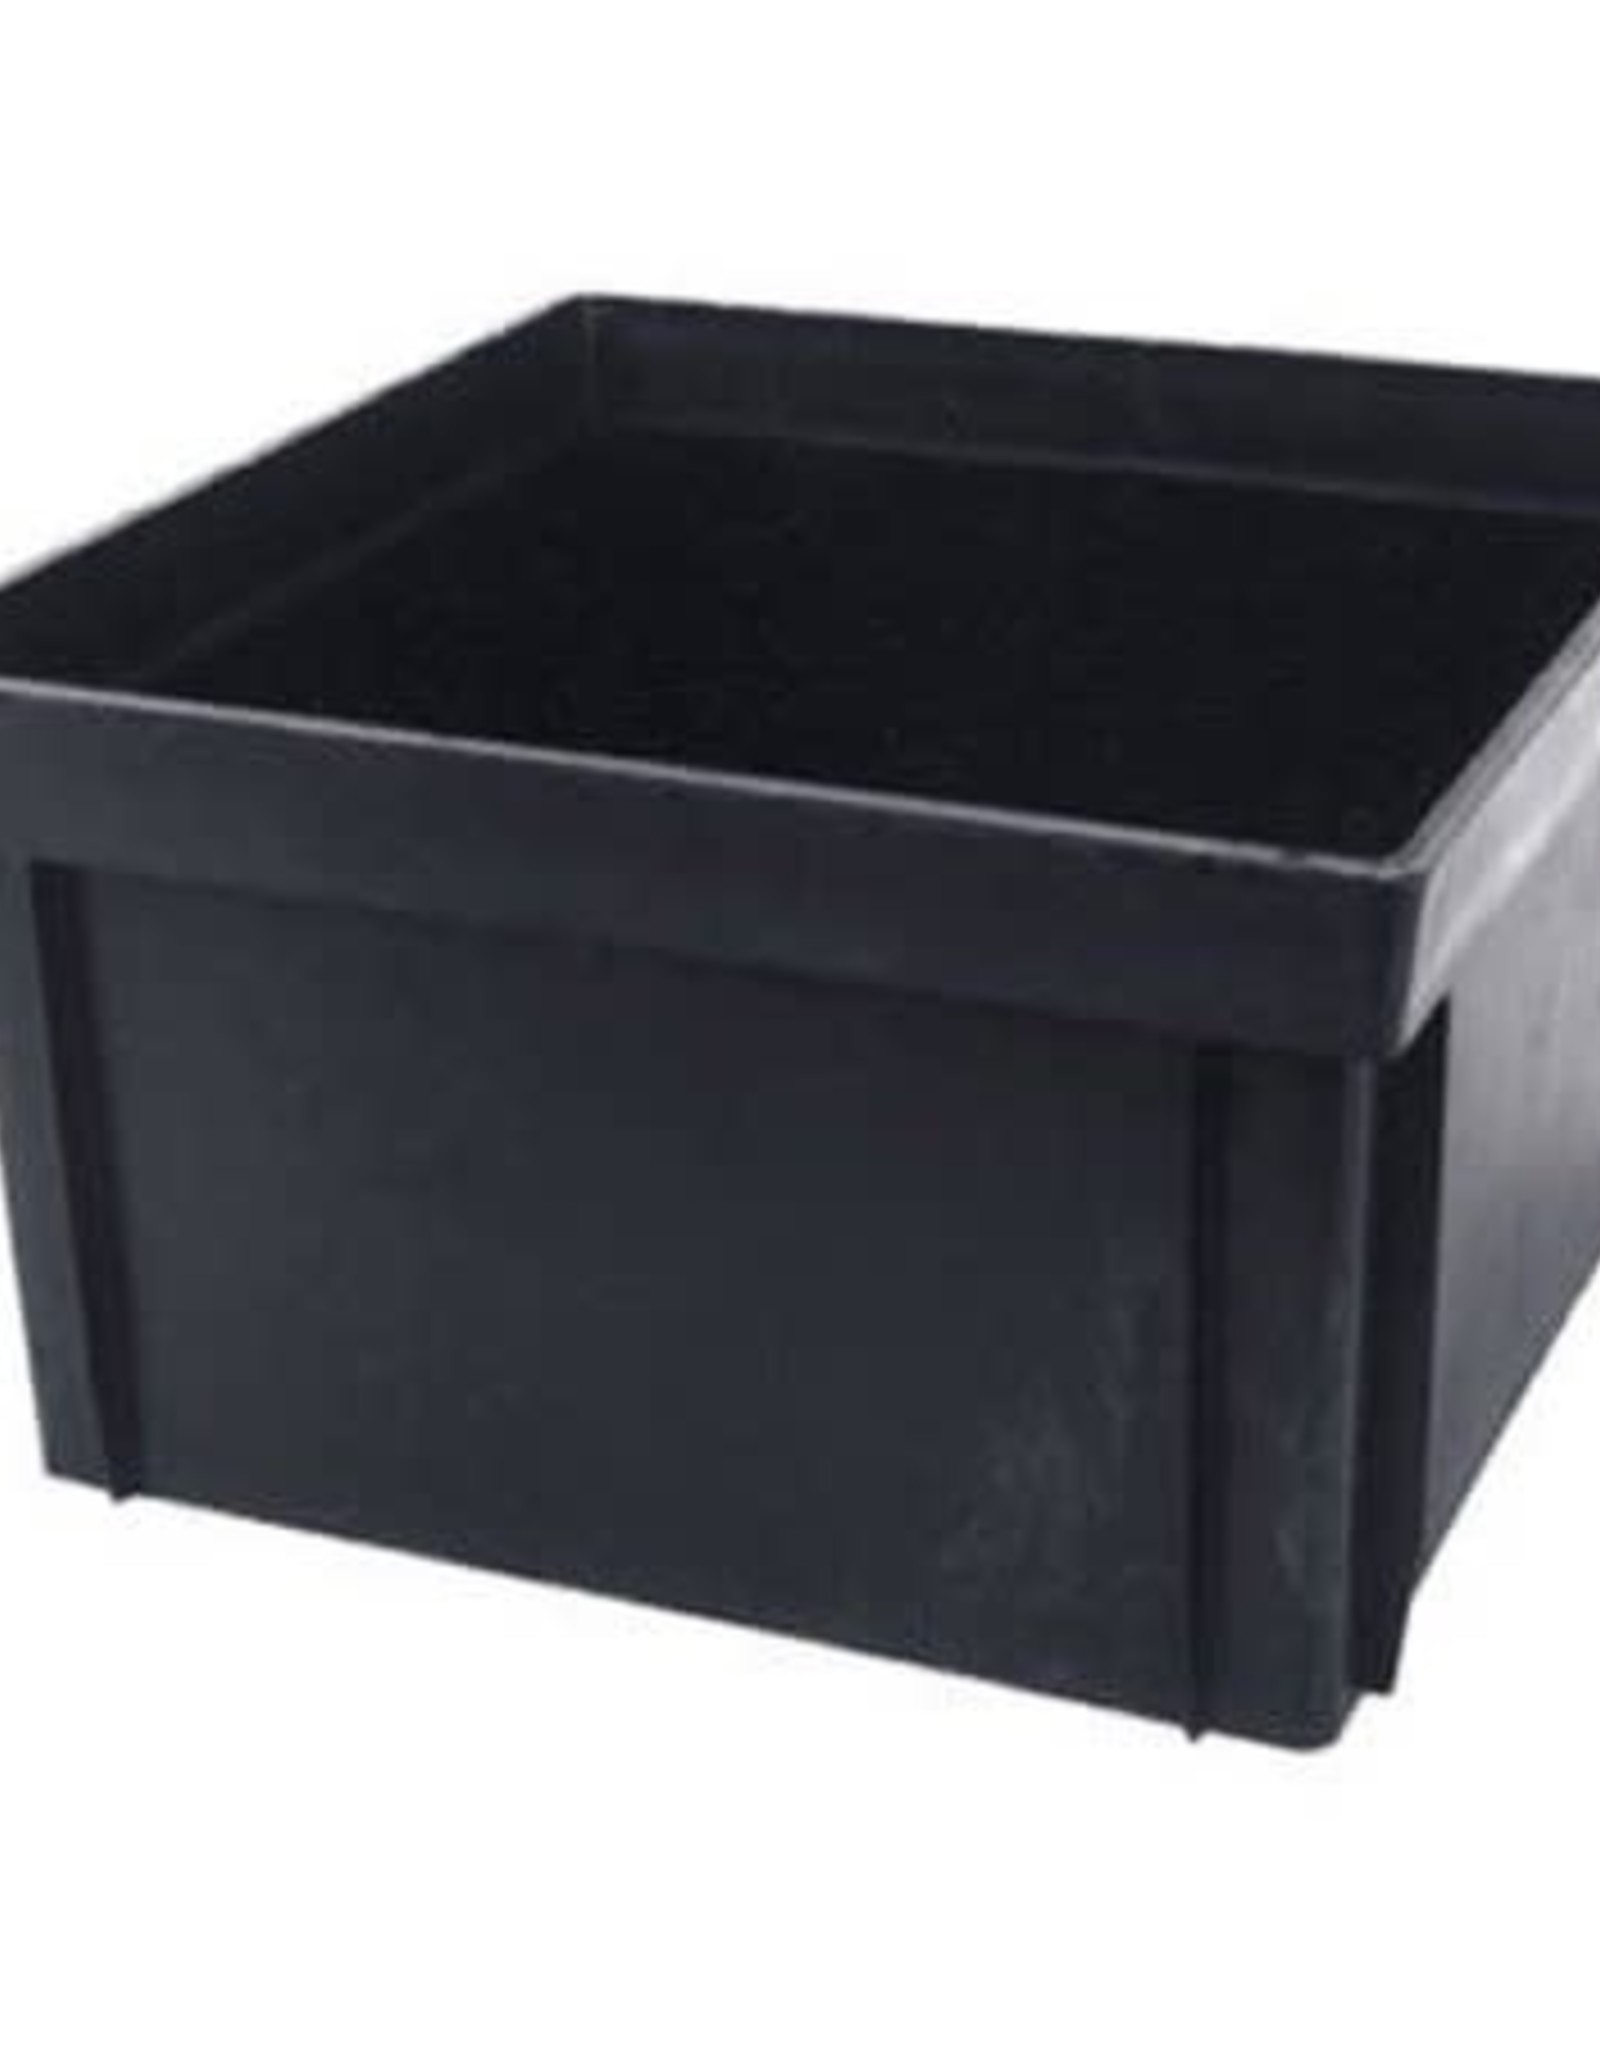 "NDS Drainage NDS 12 in. Square Extension 6"" Tall Catch Basin Riser Bottomless Black Plastic"